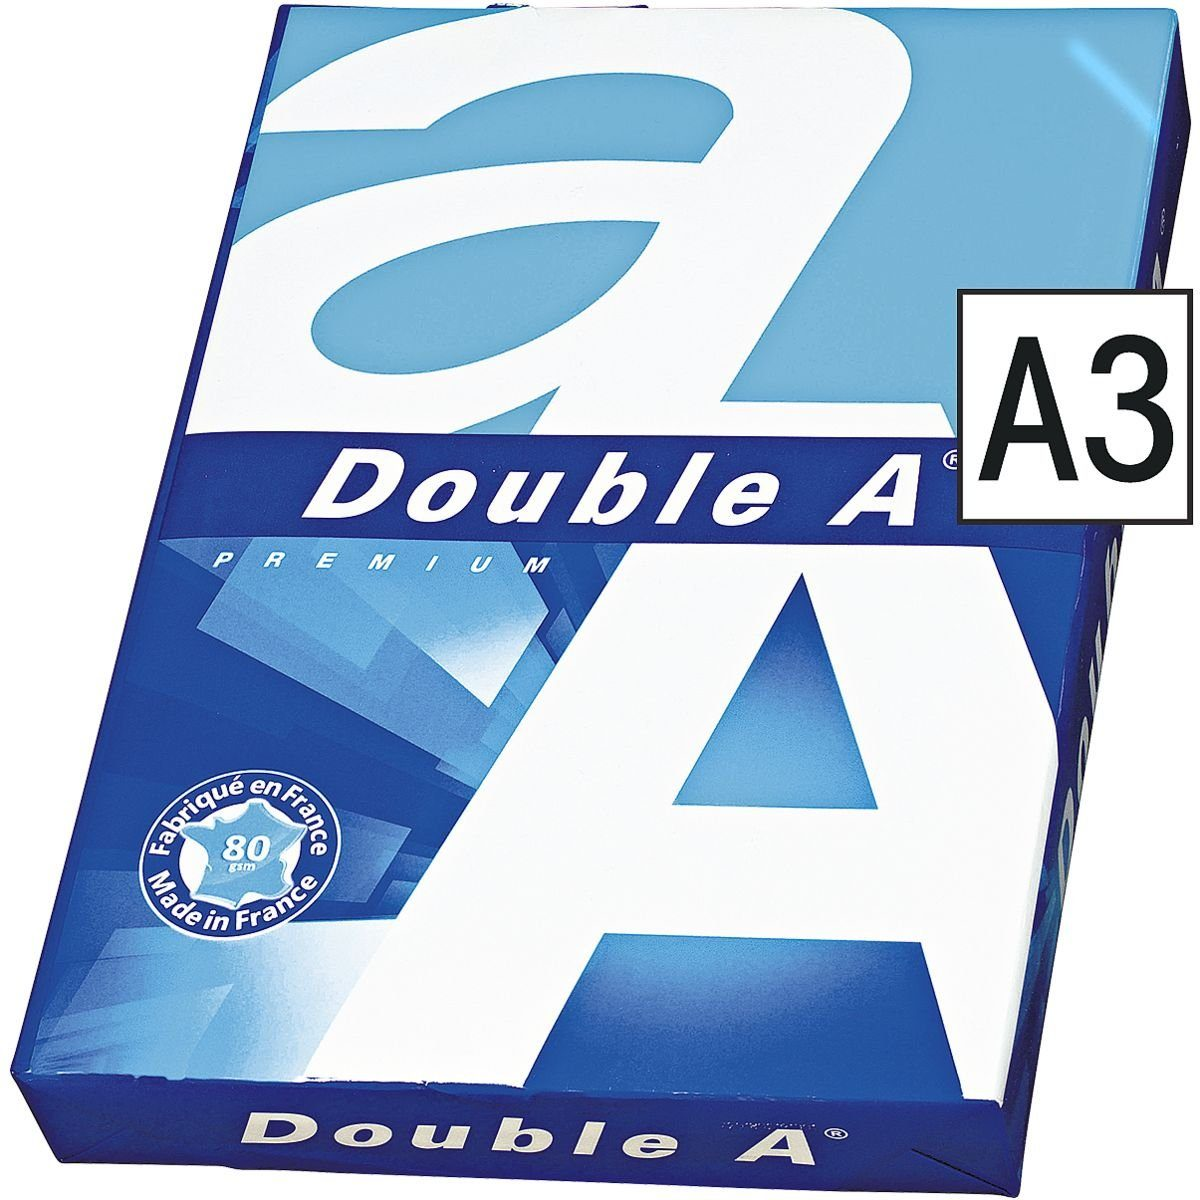 DOUBLE A Multifunktionales Druckerpapier »Double A«